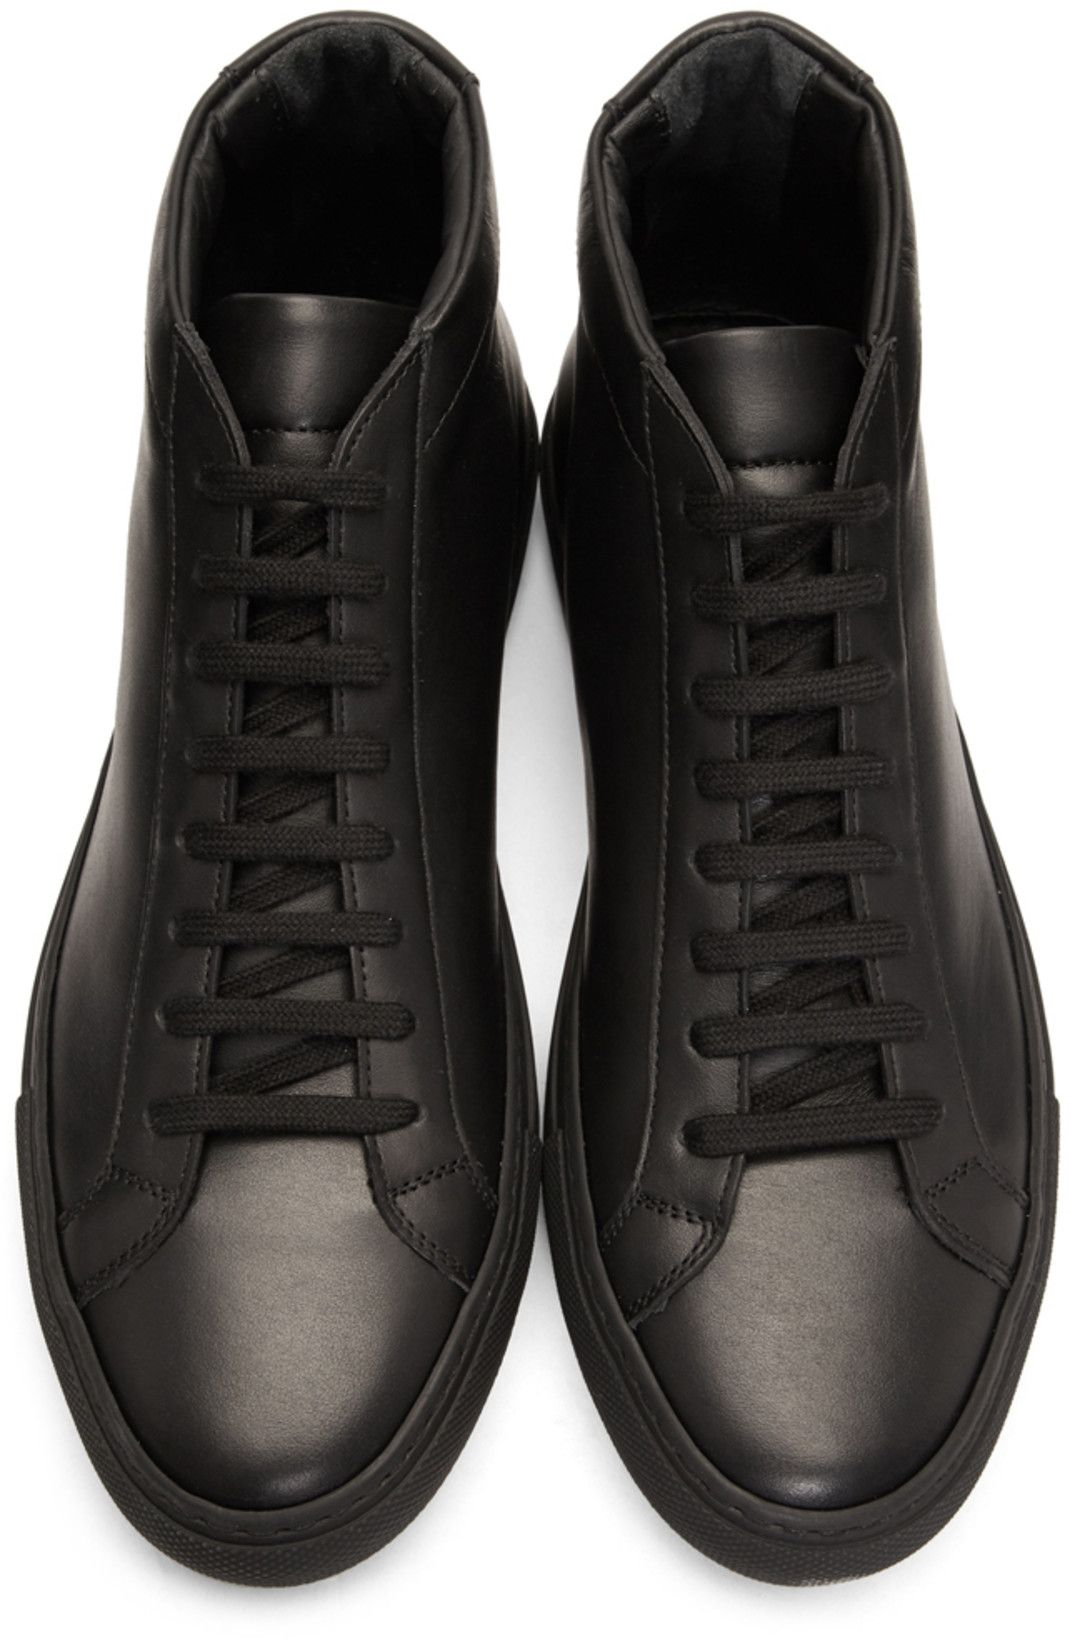 factory price c4132 b7226 Common Projects - Black Original Achilles Mid Sneakers